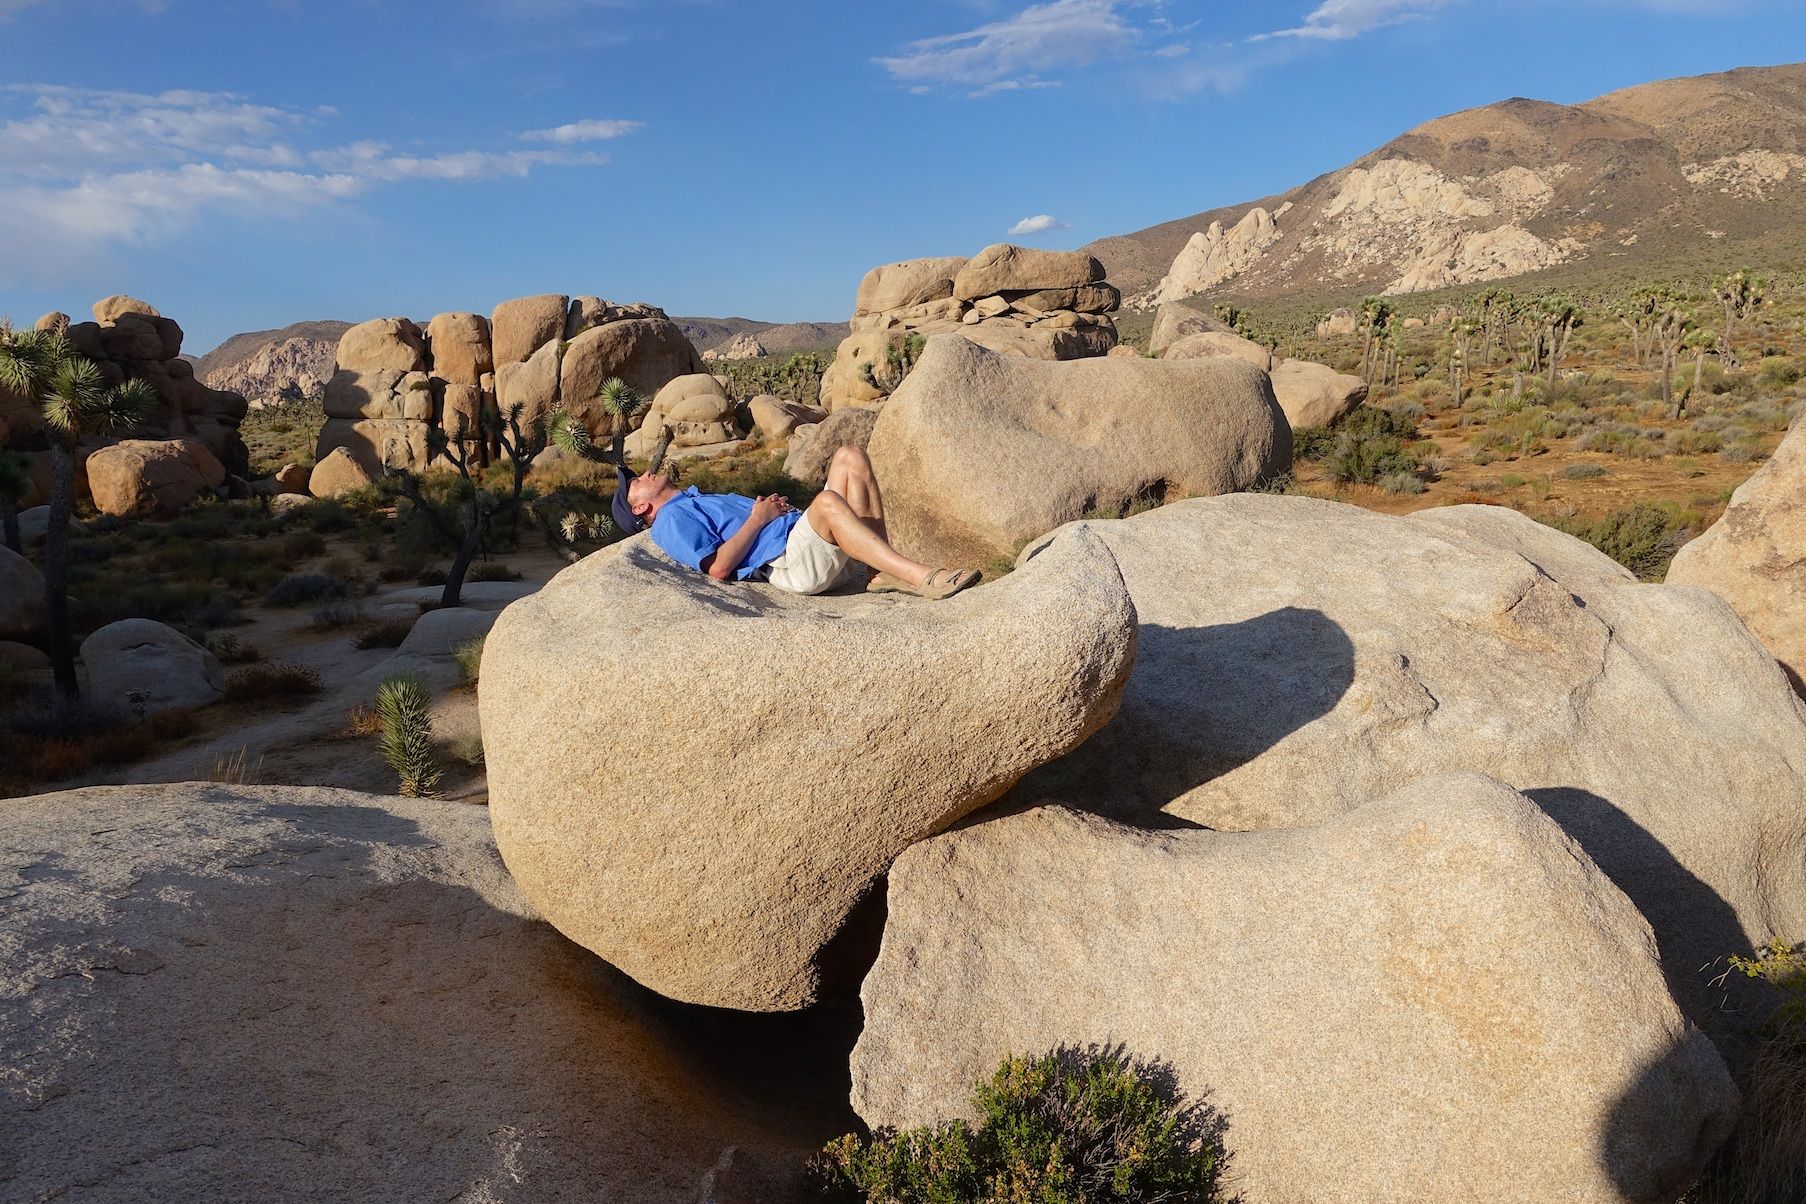 Joshua Tree National Park: Cap Rock Nature Trail